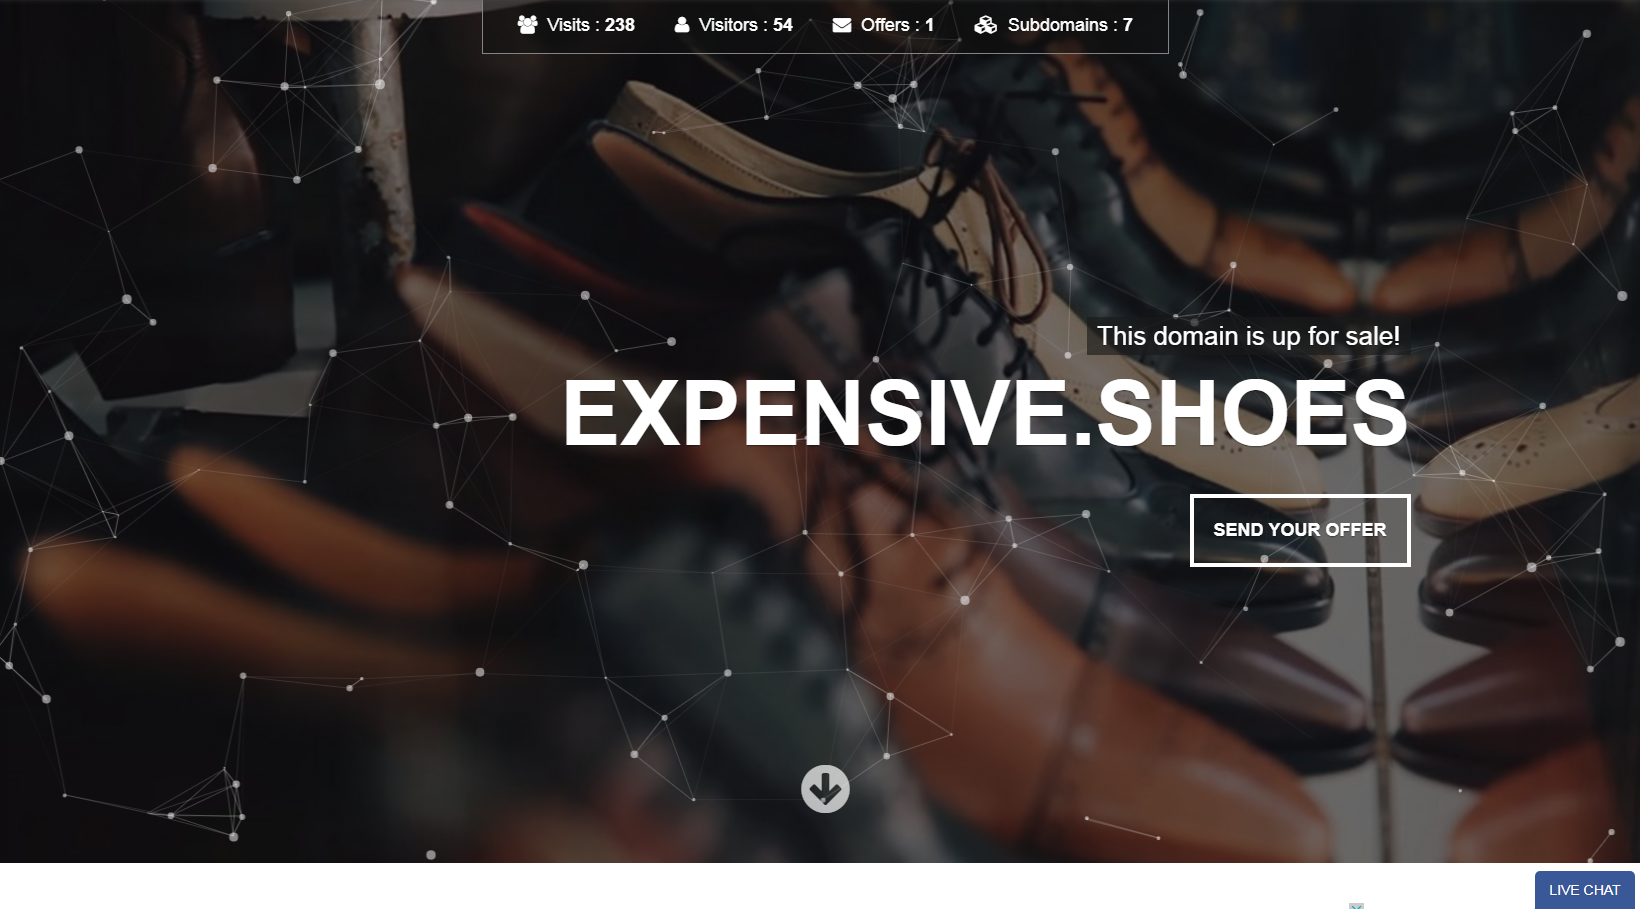 expensive.shoes landing page